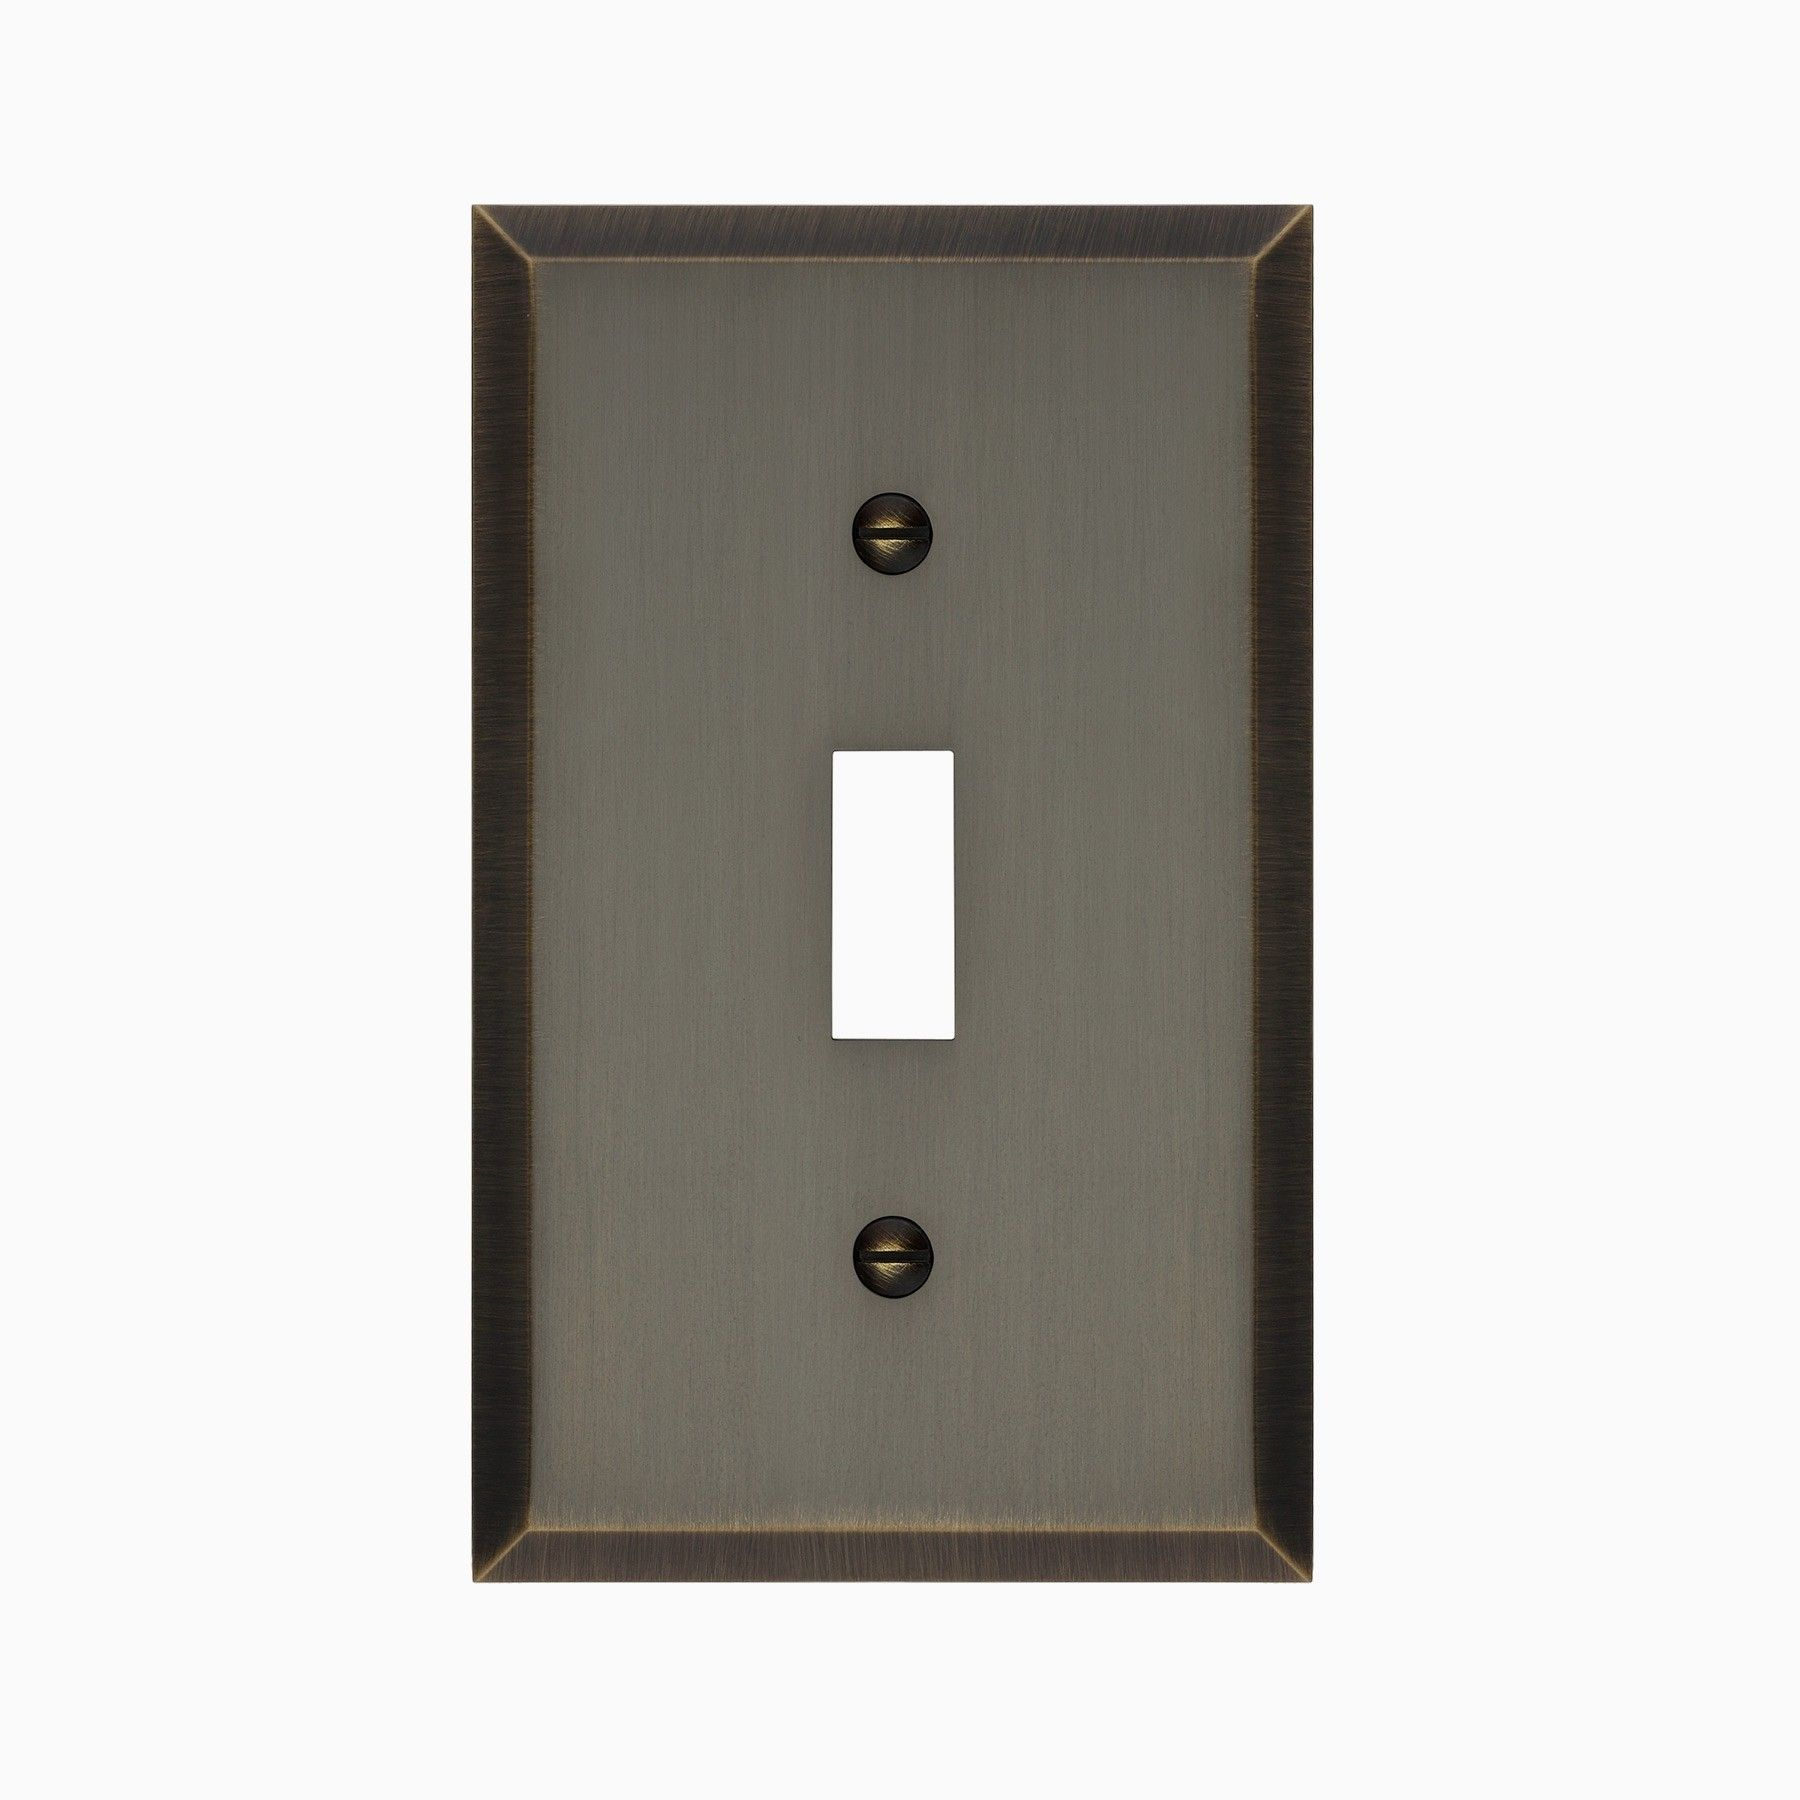 Graham Solid Brass Single Light Switch Cover Light Switch Covers Switch Covers Plates On Wall